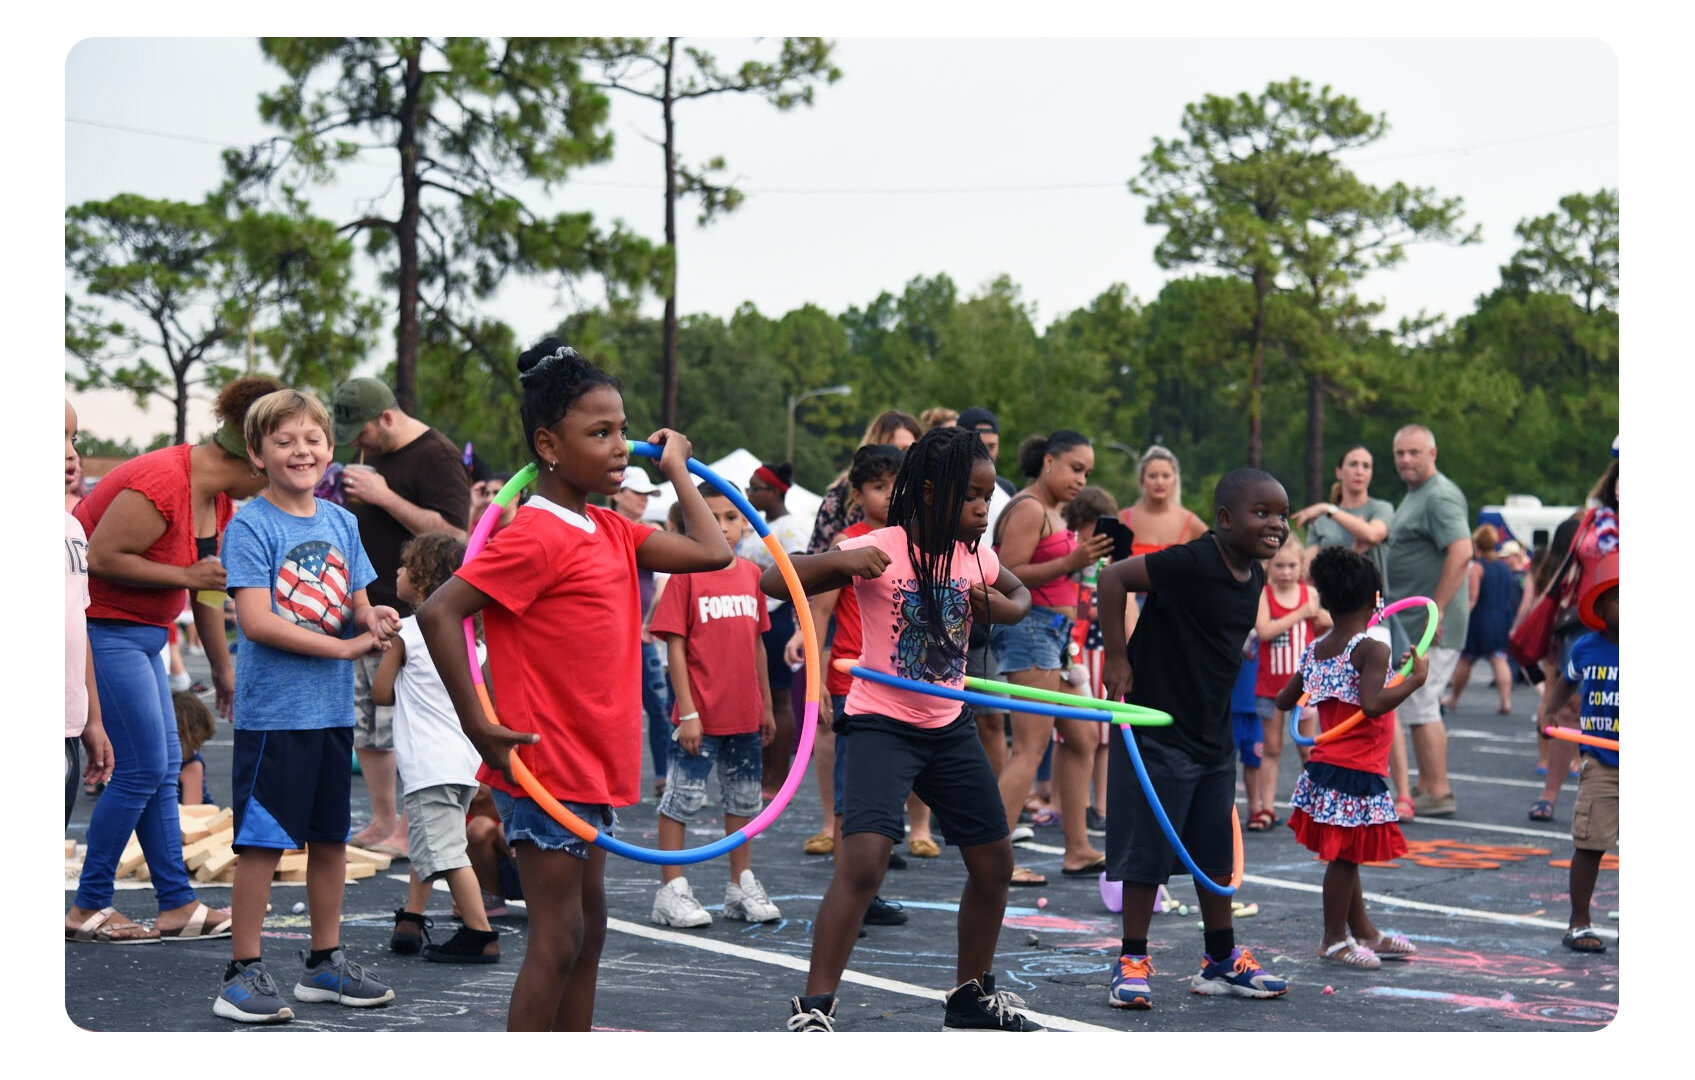 Upcoming Events - Our community outreach events bring thousands of visitors to our campus. Click below to see the full list of events for you & the whole fam!